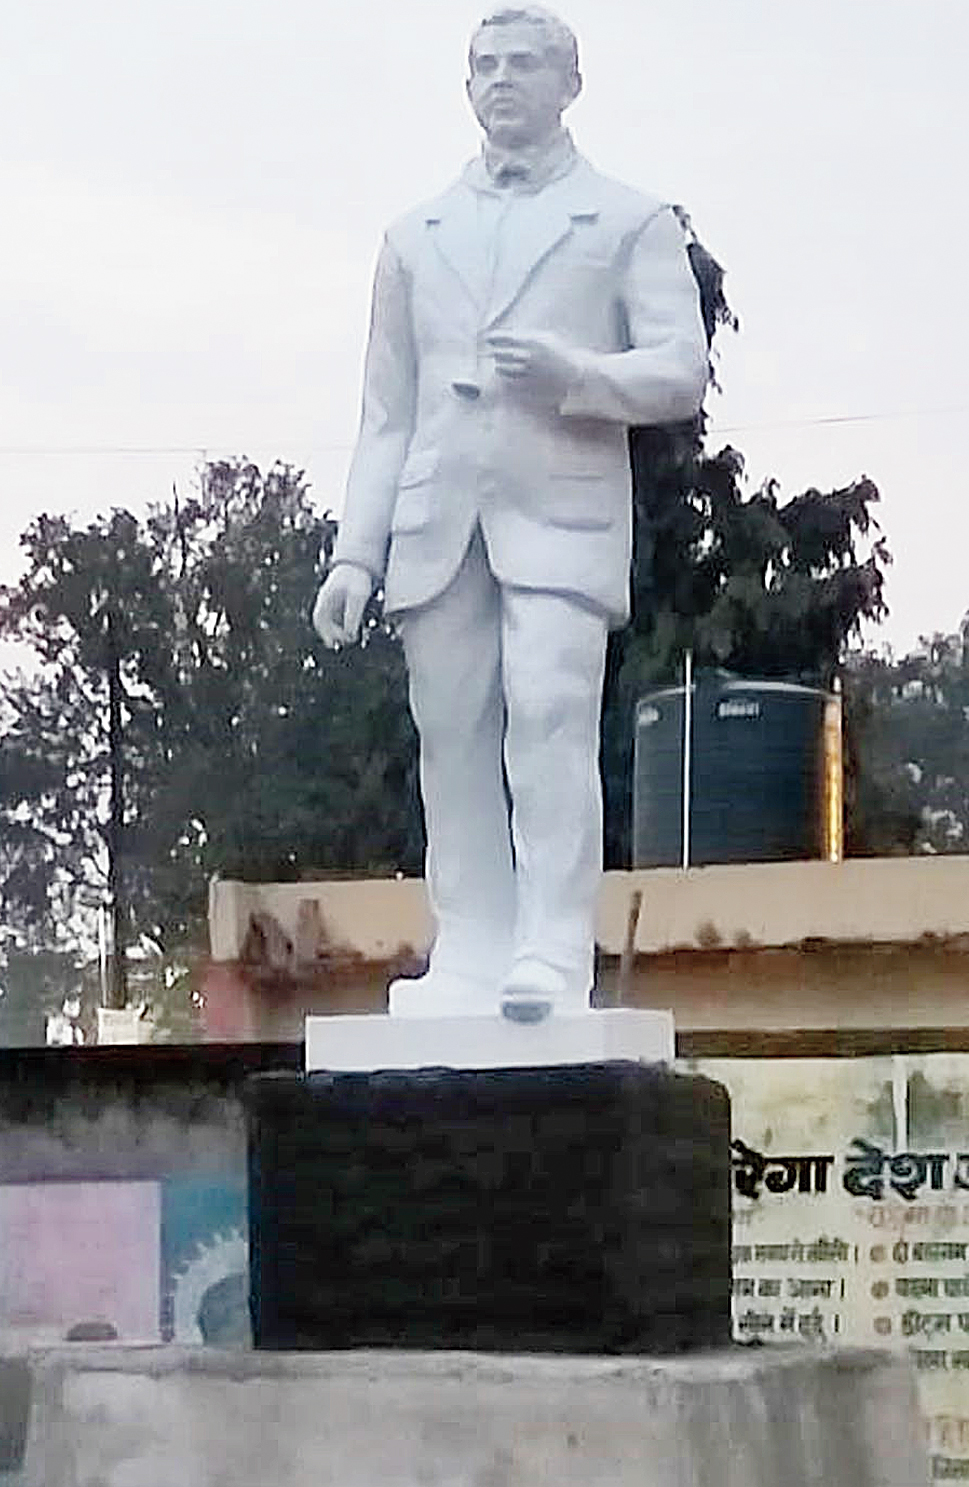 Standing tall: The statue of Dr Subhash Mukhopadhyay that will be formally unveiled at Hazaribagh Sadar Hospital on Sunday.